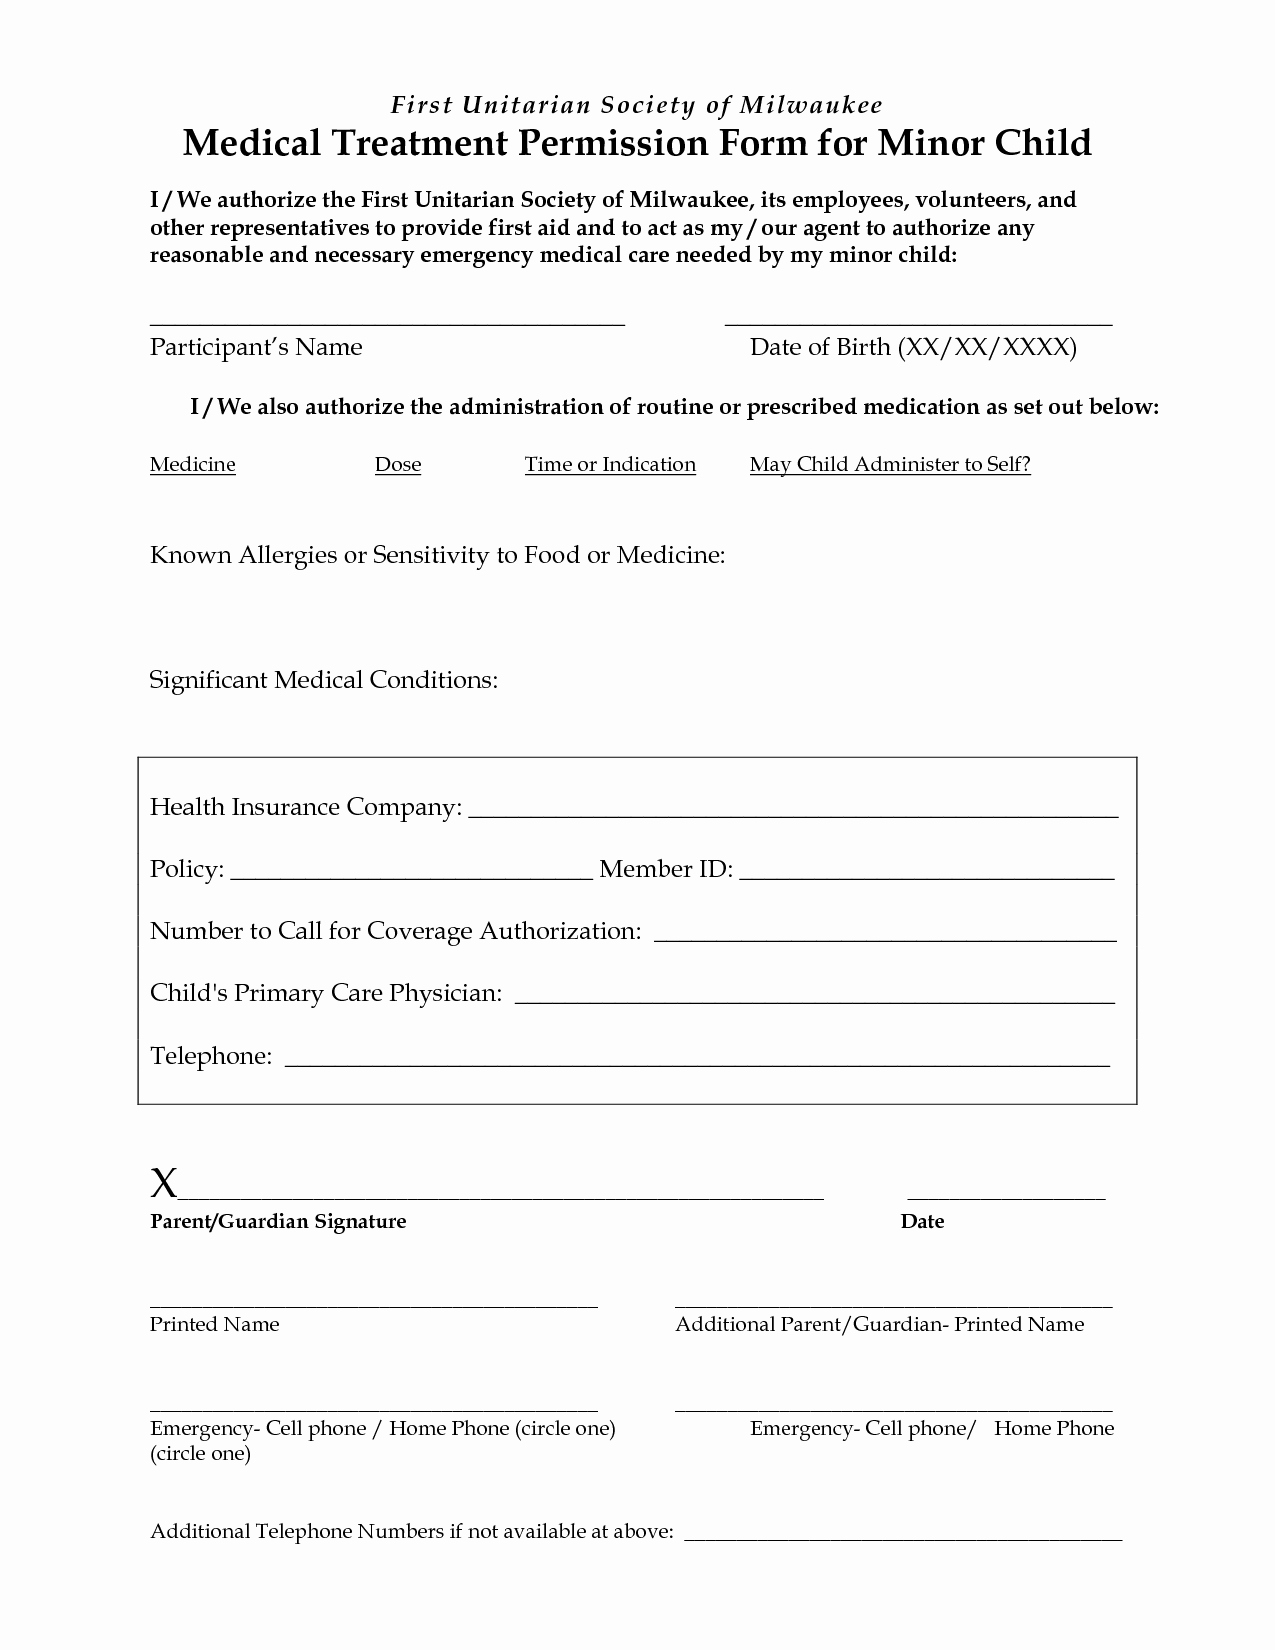 Emergency Room Release form Template Fresh Medical Treatment Release form Free Printable Documents